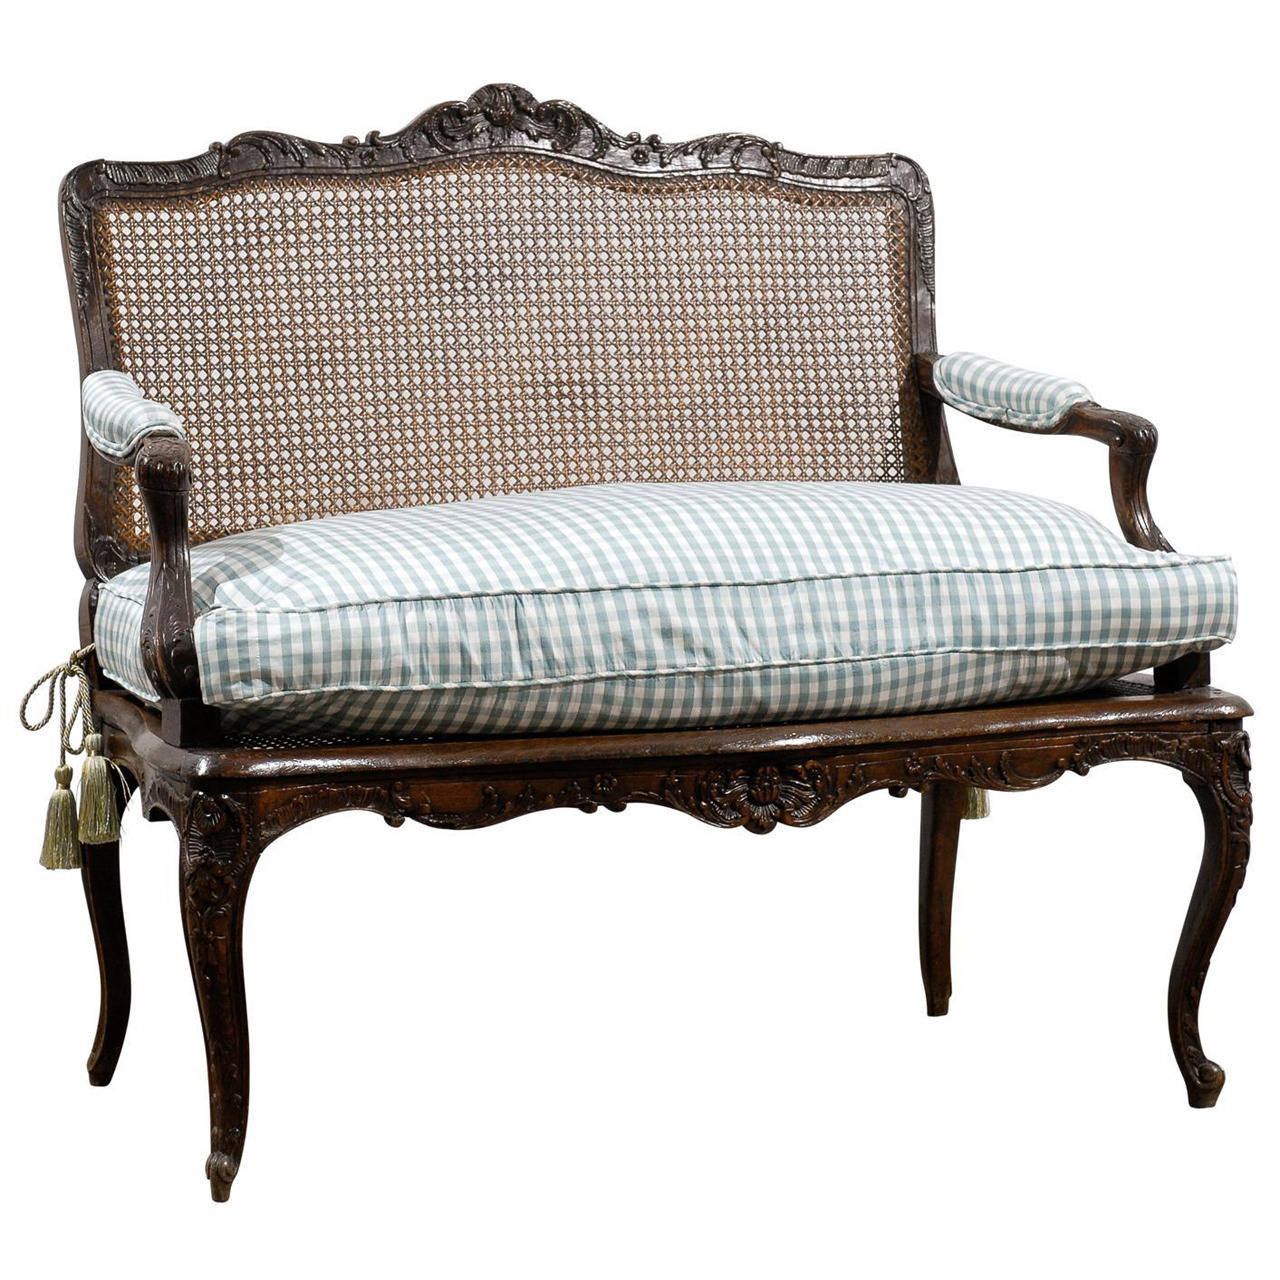 19th century caned louis xv style canap at 1stdibs for Canape style louis xv